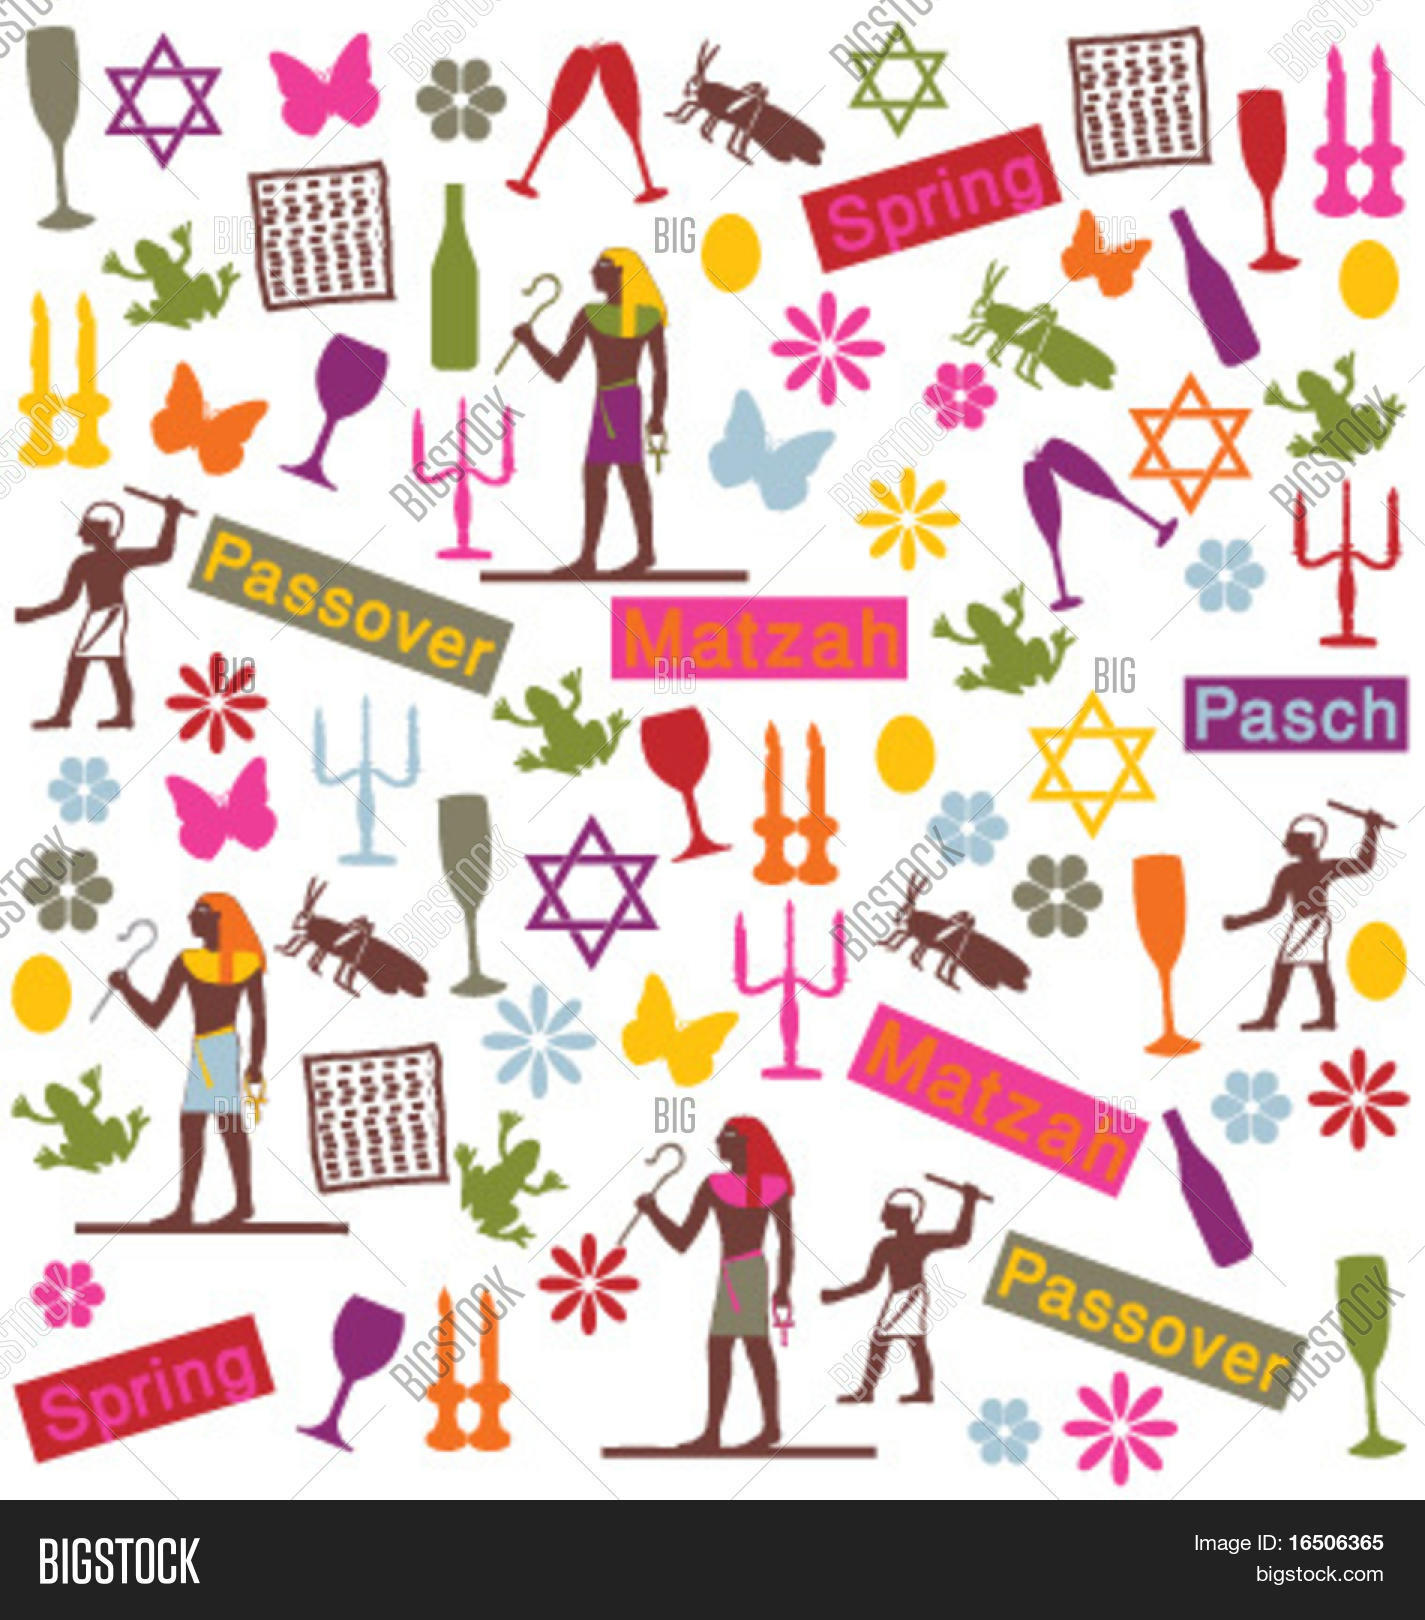 Passover Symbols Vector Photo Free Trial Bigstock